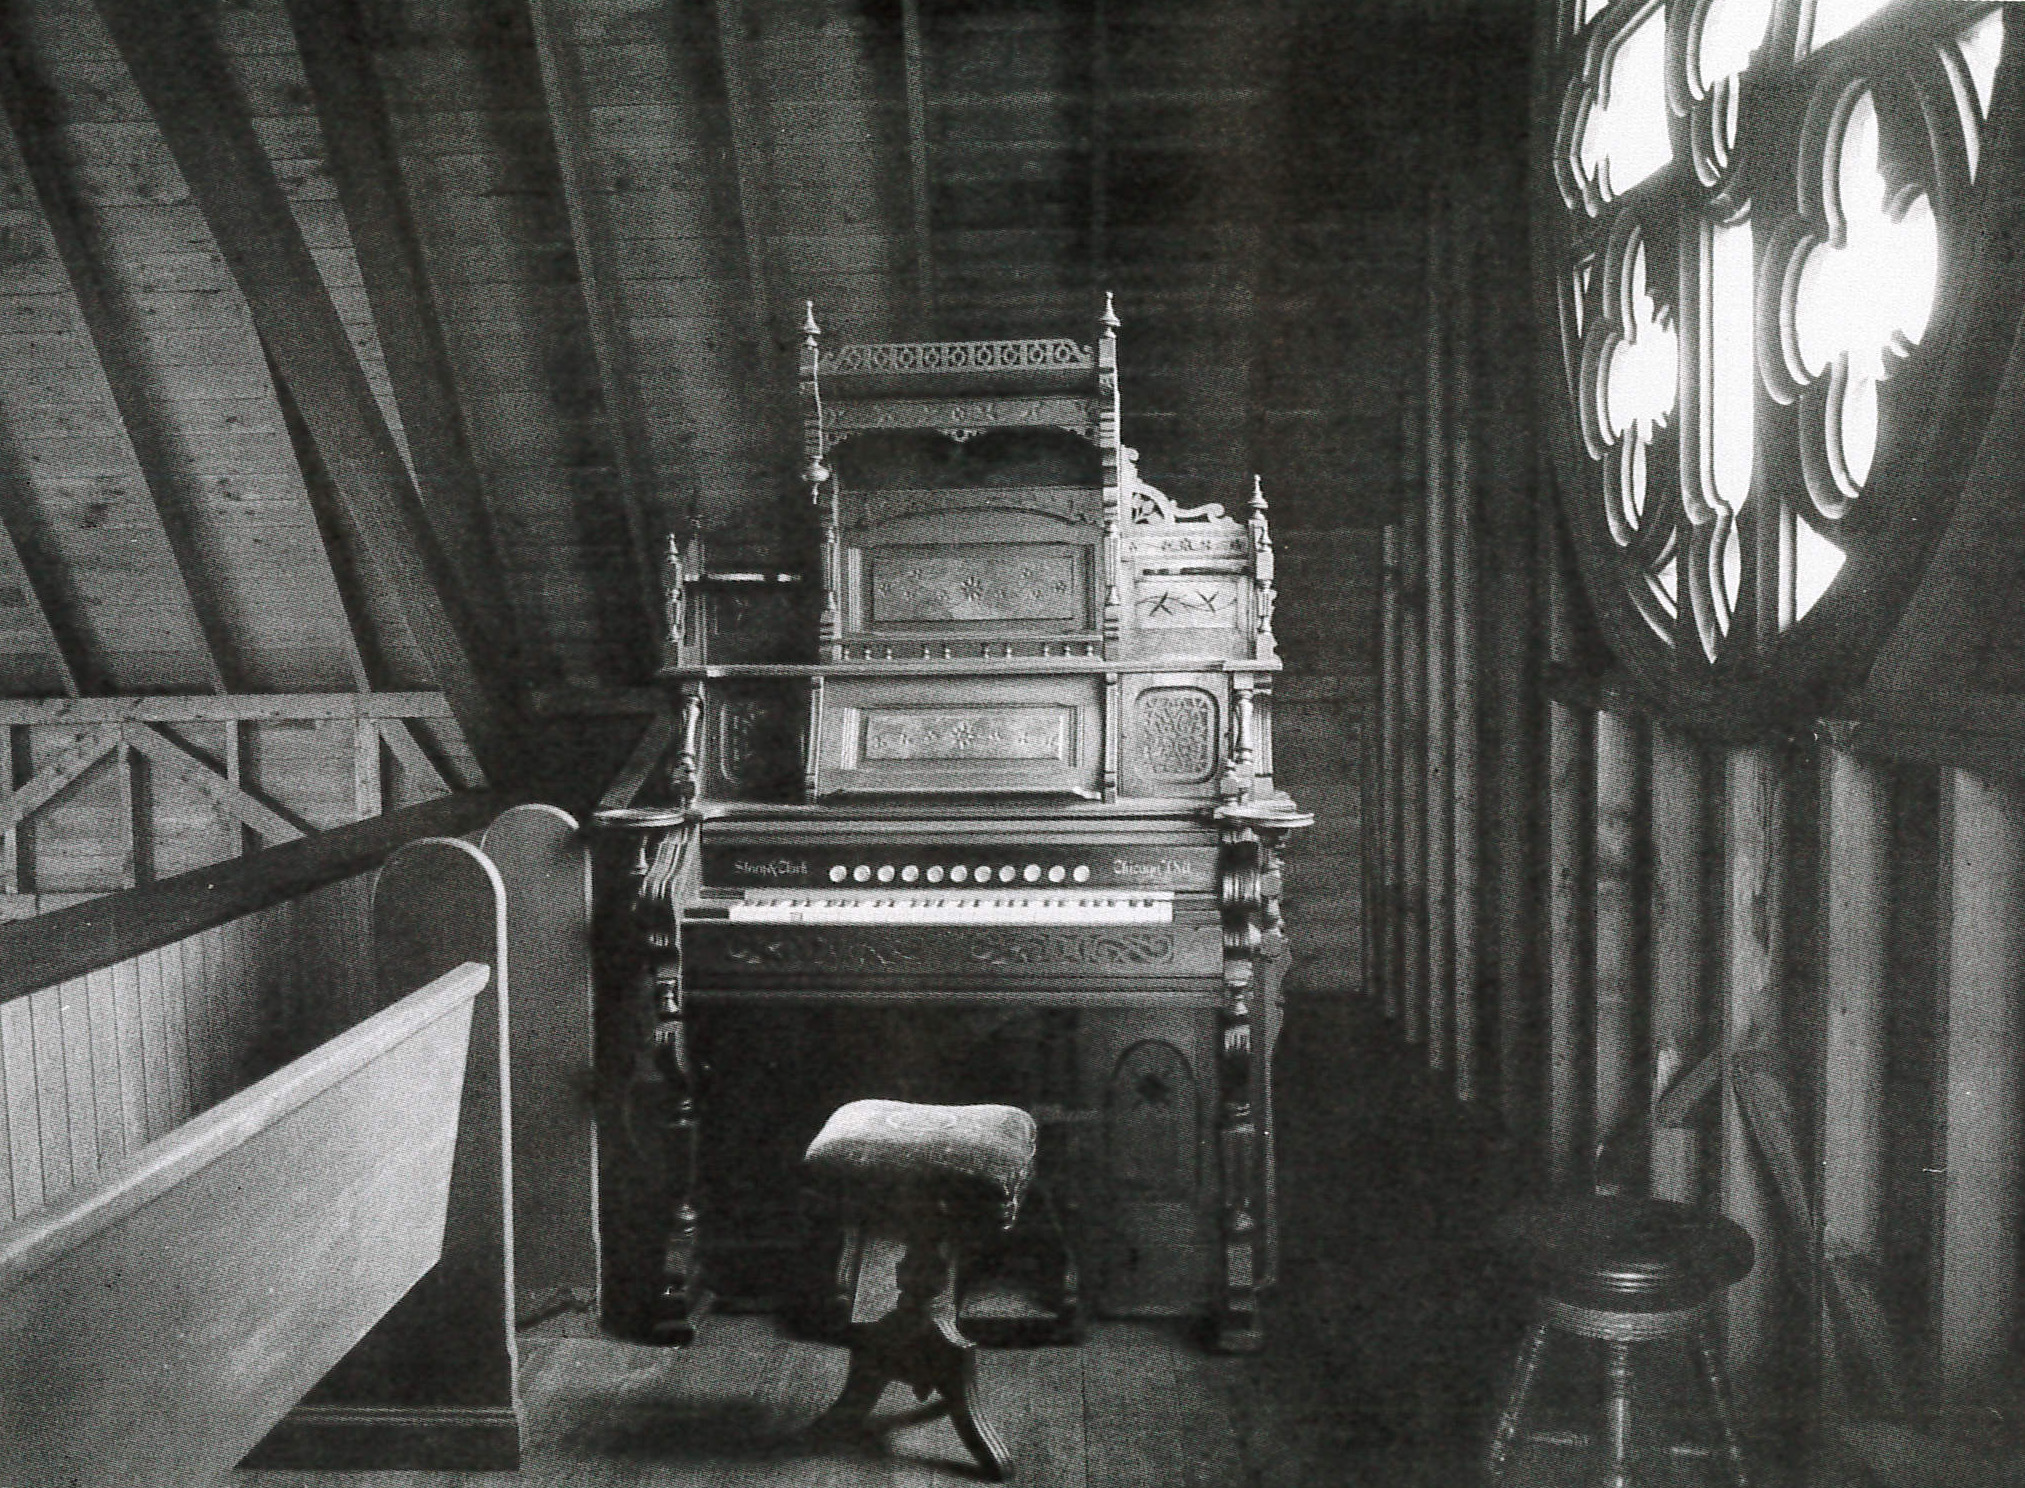 Story and Clark Organ in the North Haven Catholic Church  Photo Courtesy of Eleanor Motley Richardson, Hurricane Island: The Town That Disappeared